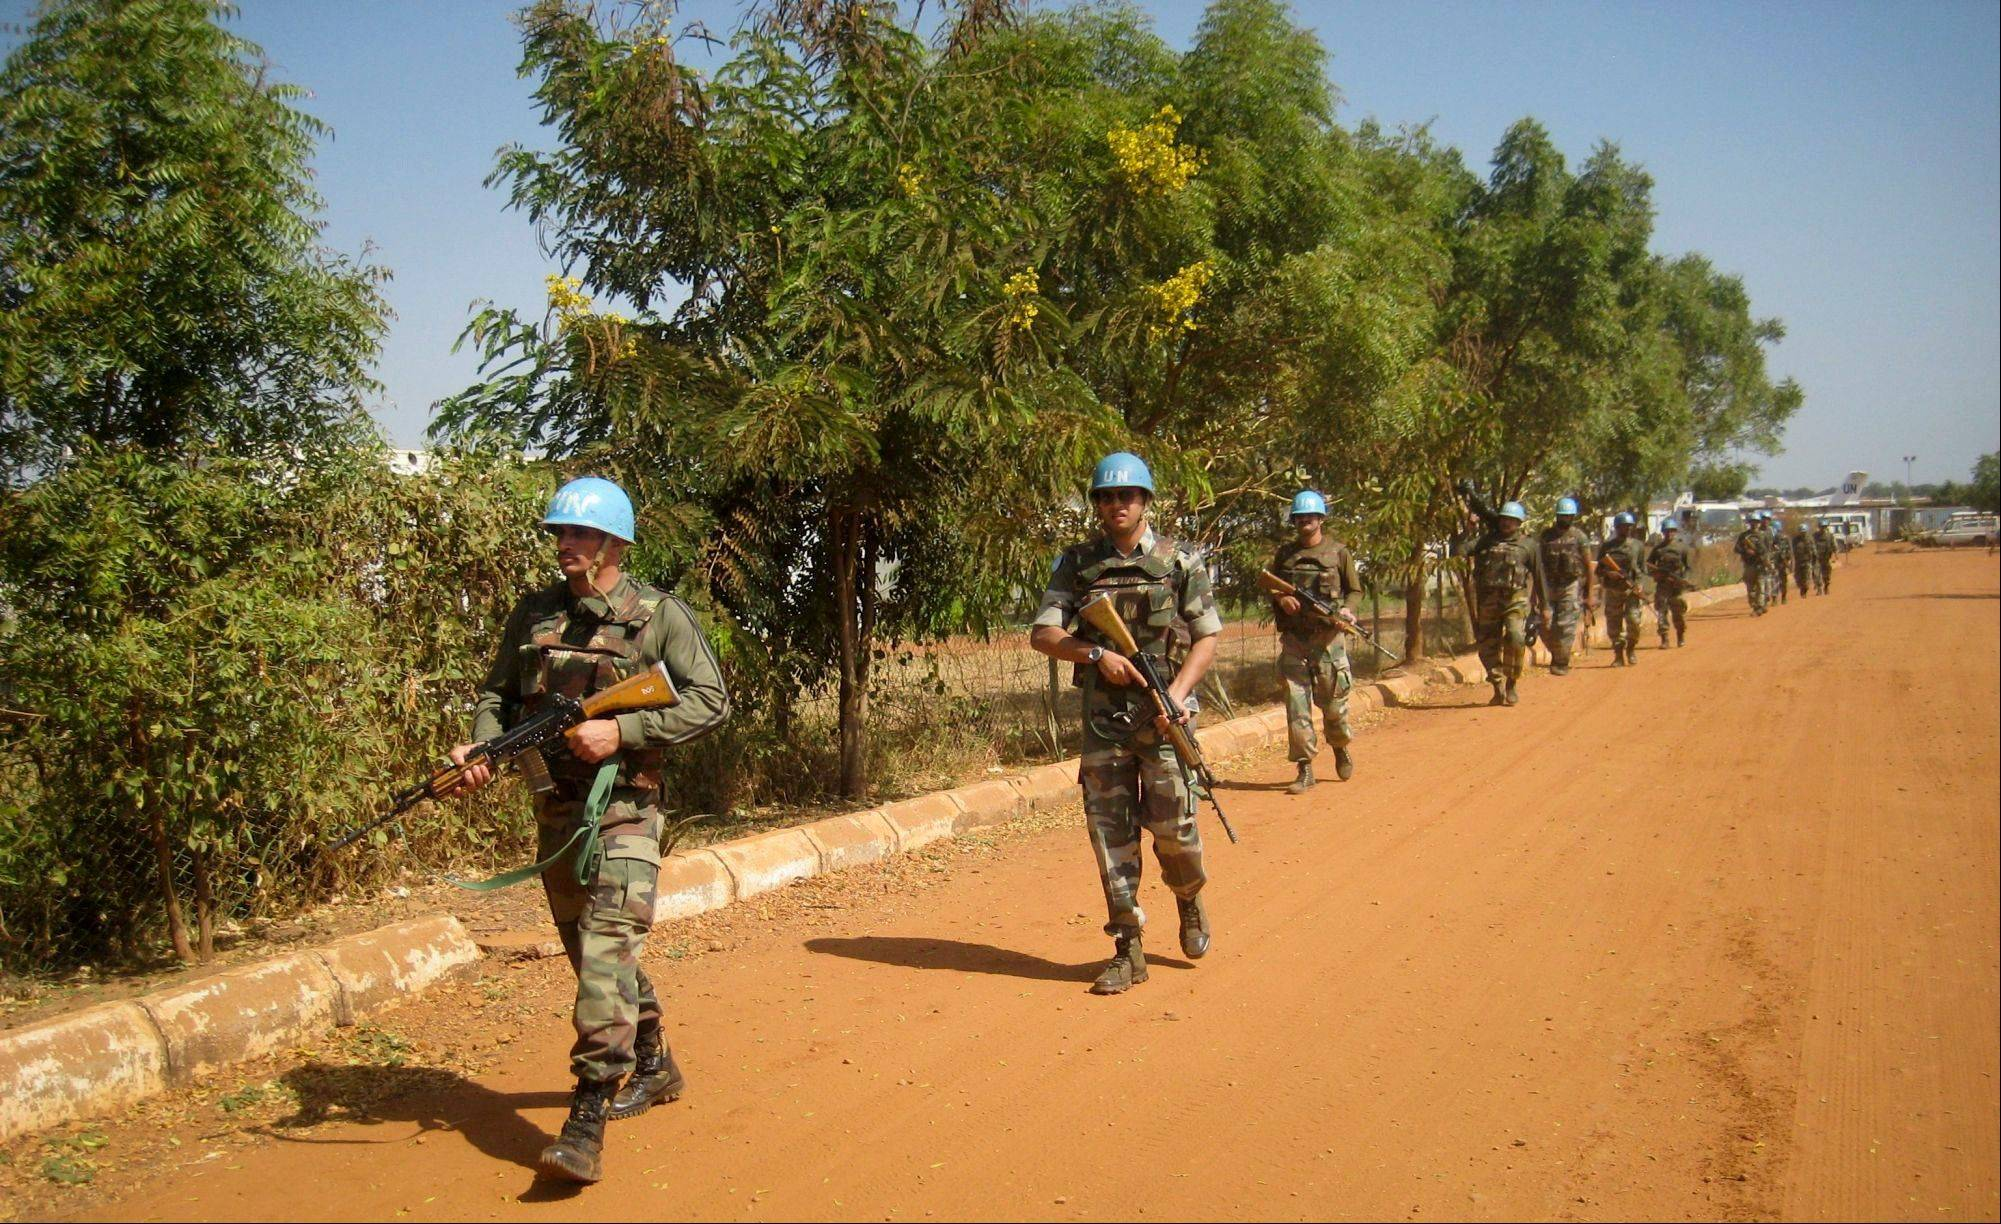 U.N. troops from India patrol at the compound in Juba, South Sudan. The U.N.'s humanitarian arm said Friday that 34,000 people in South Sudan are seeking refuge at U.N. bases in three locations across the country.